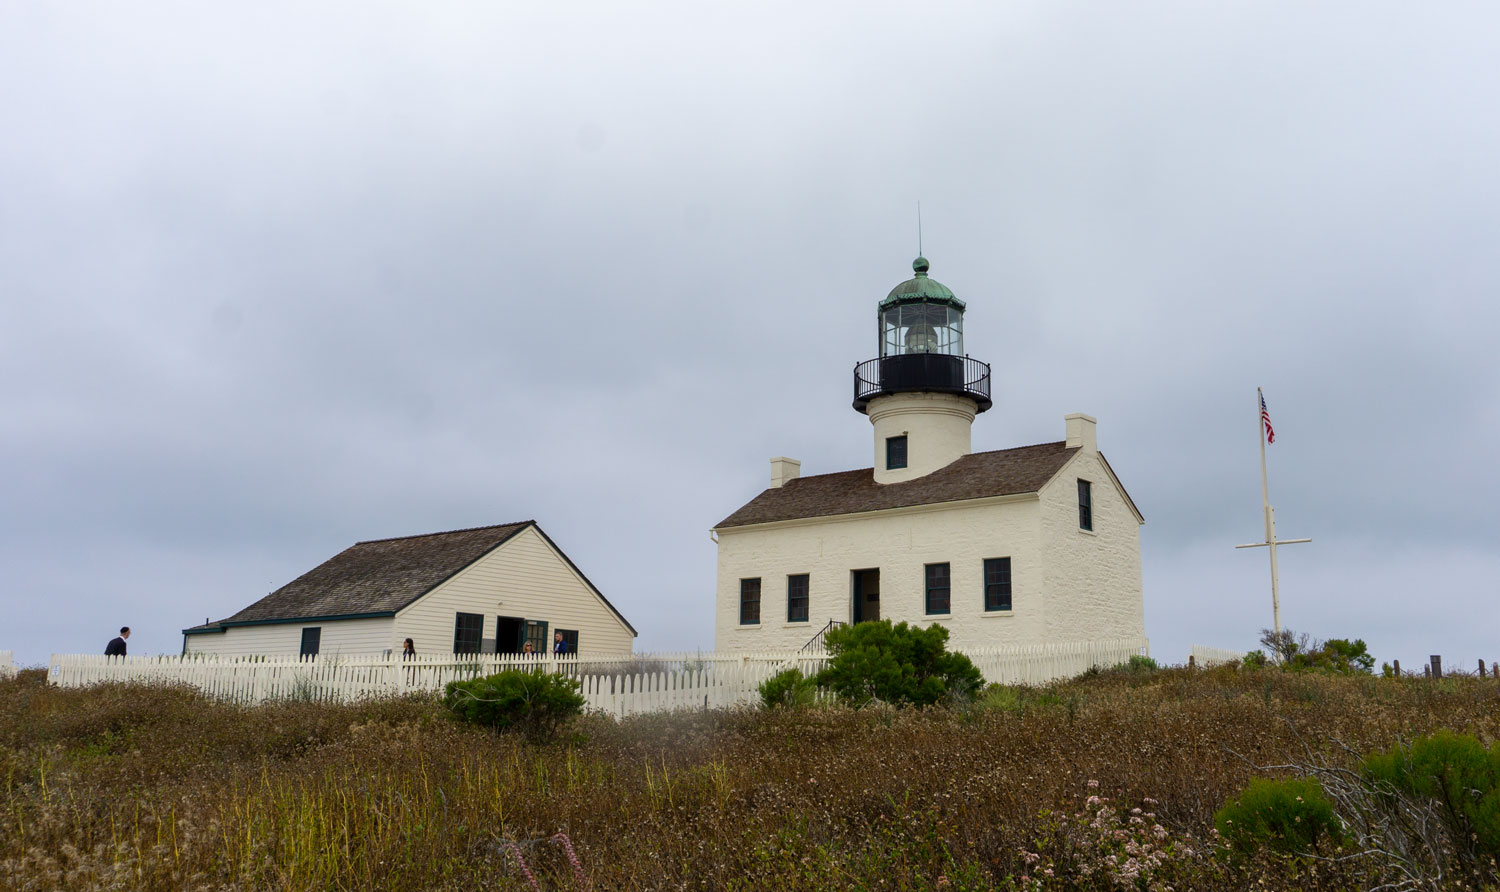 The lighthouse at Cabrillo National Monument.